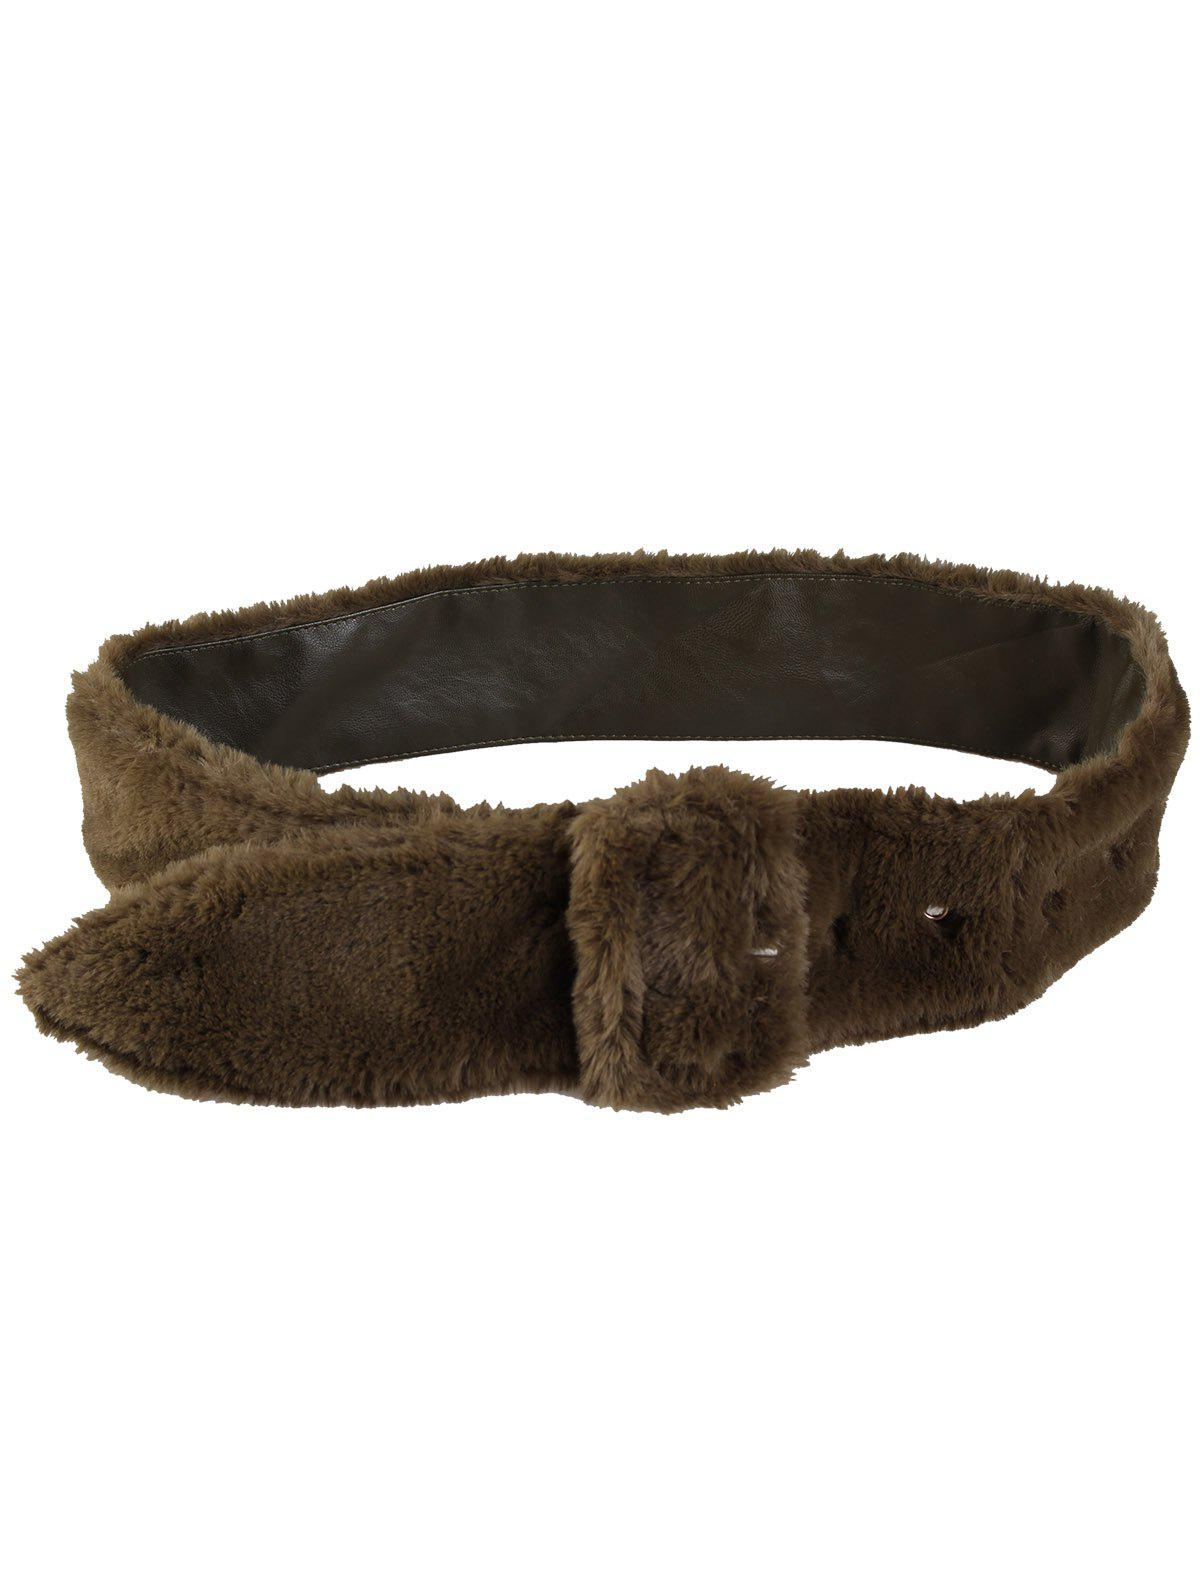 Funny Rectangle Buckle Embellished Furry Wide Waist Belt - OLIVE GREEN